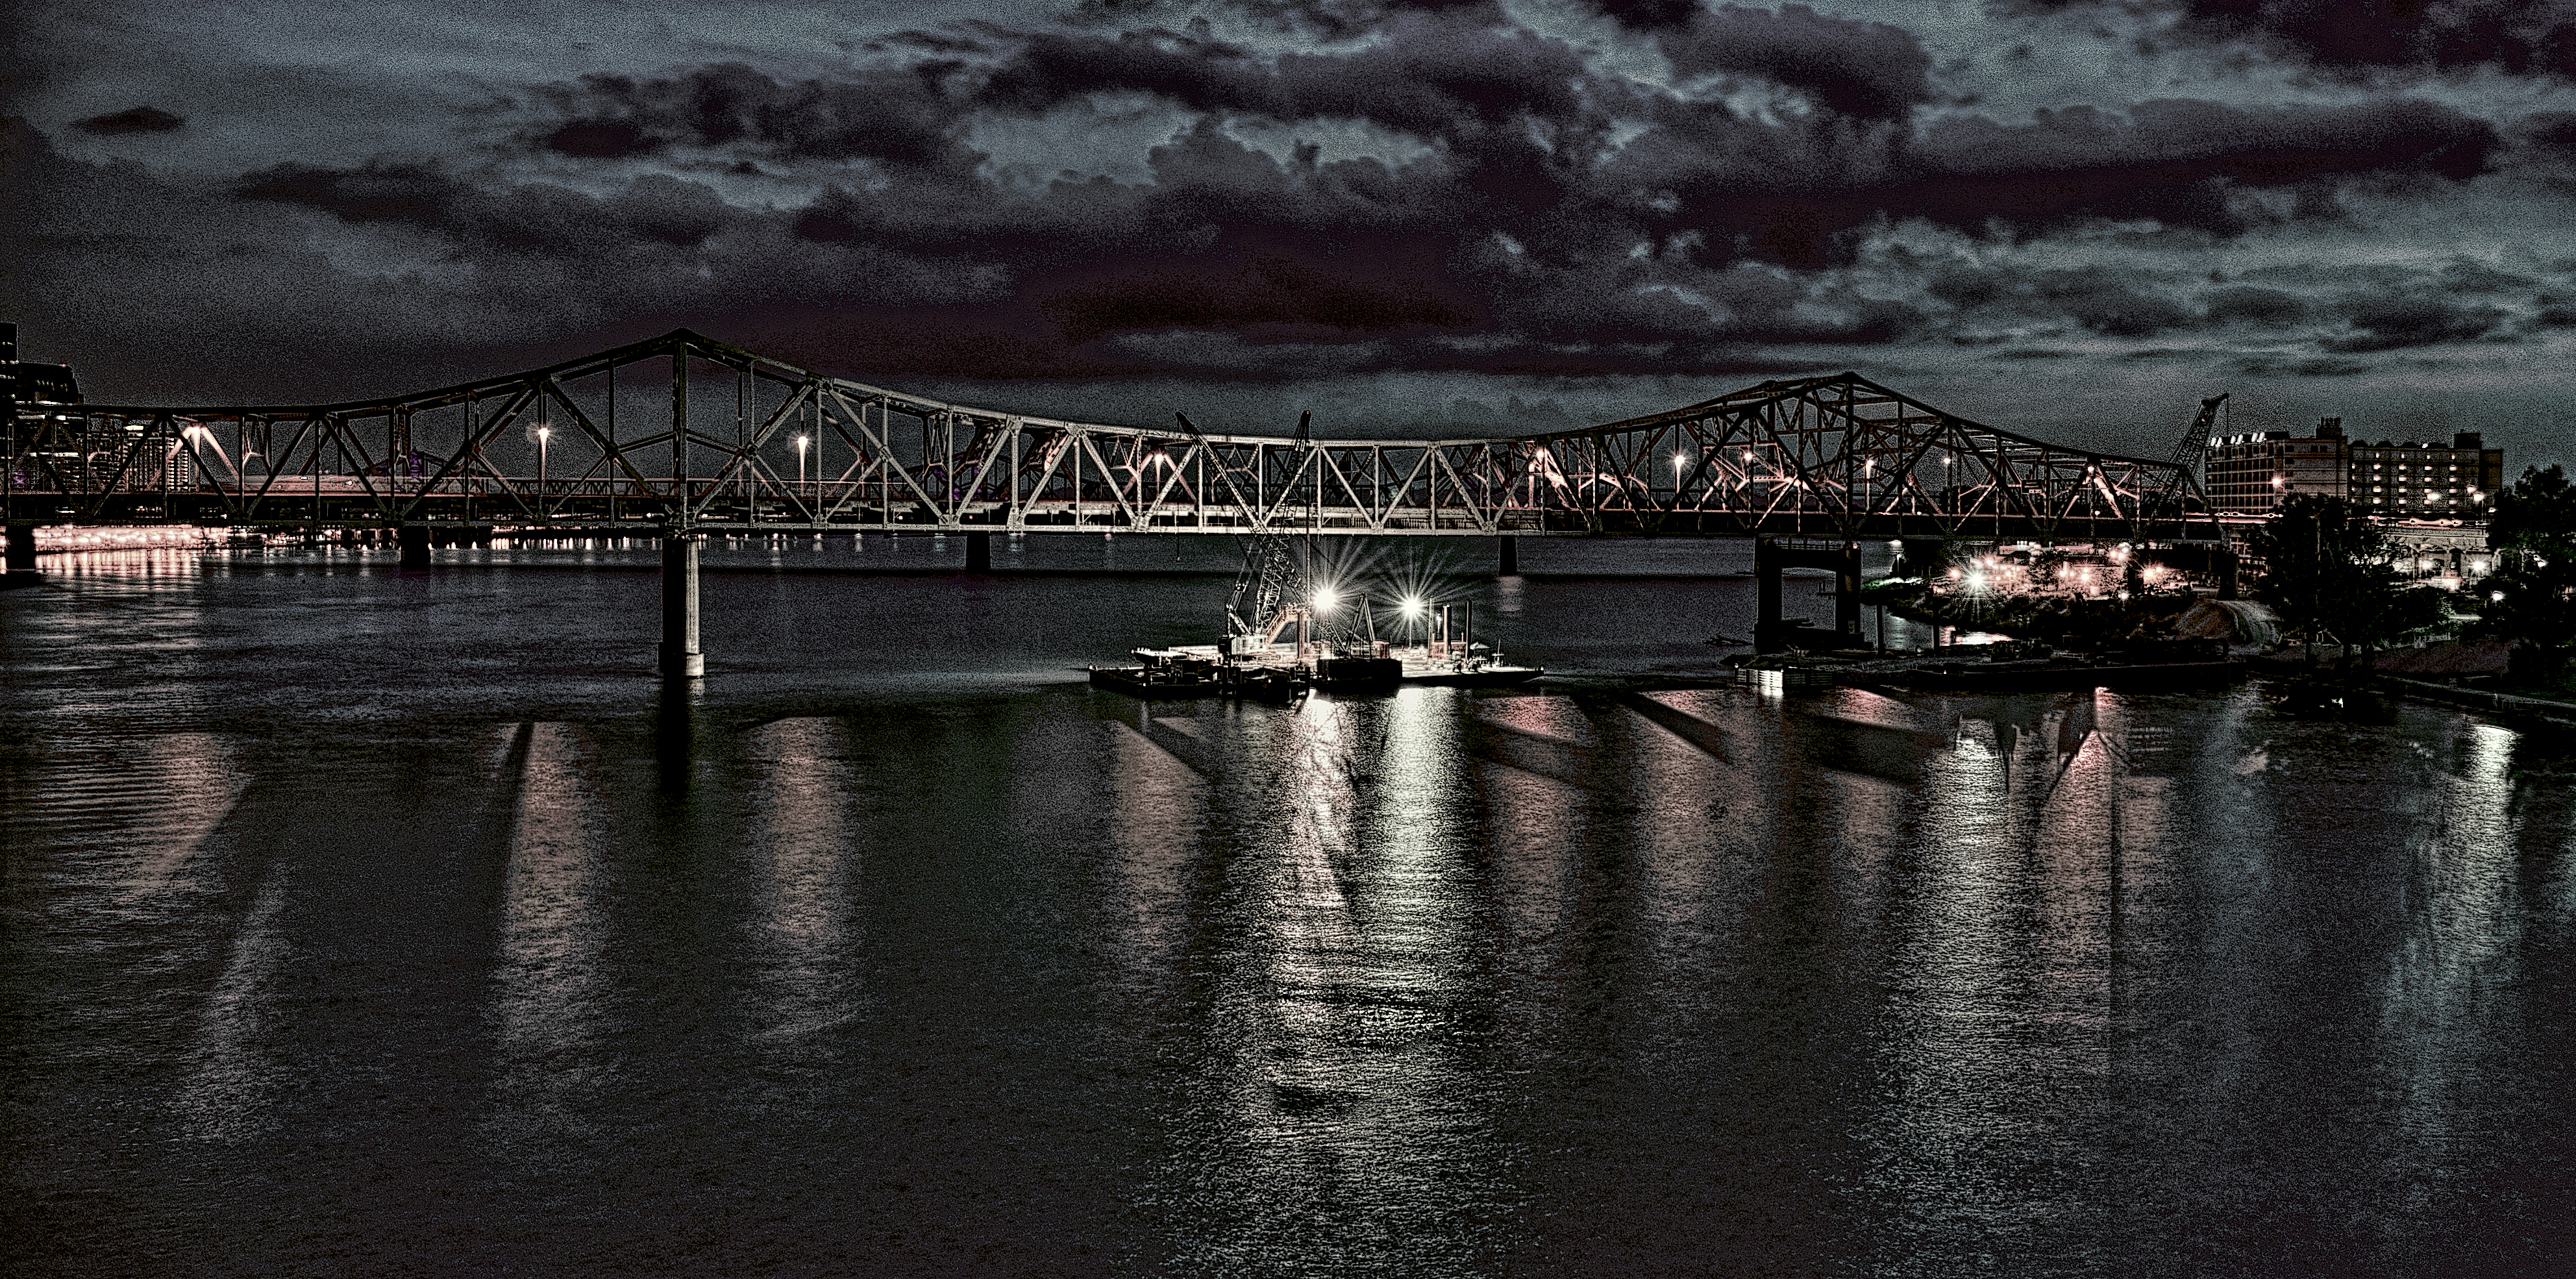 Ohio River Bridges Project Downtown Span #3